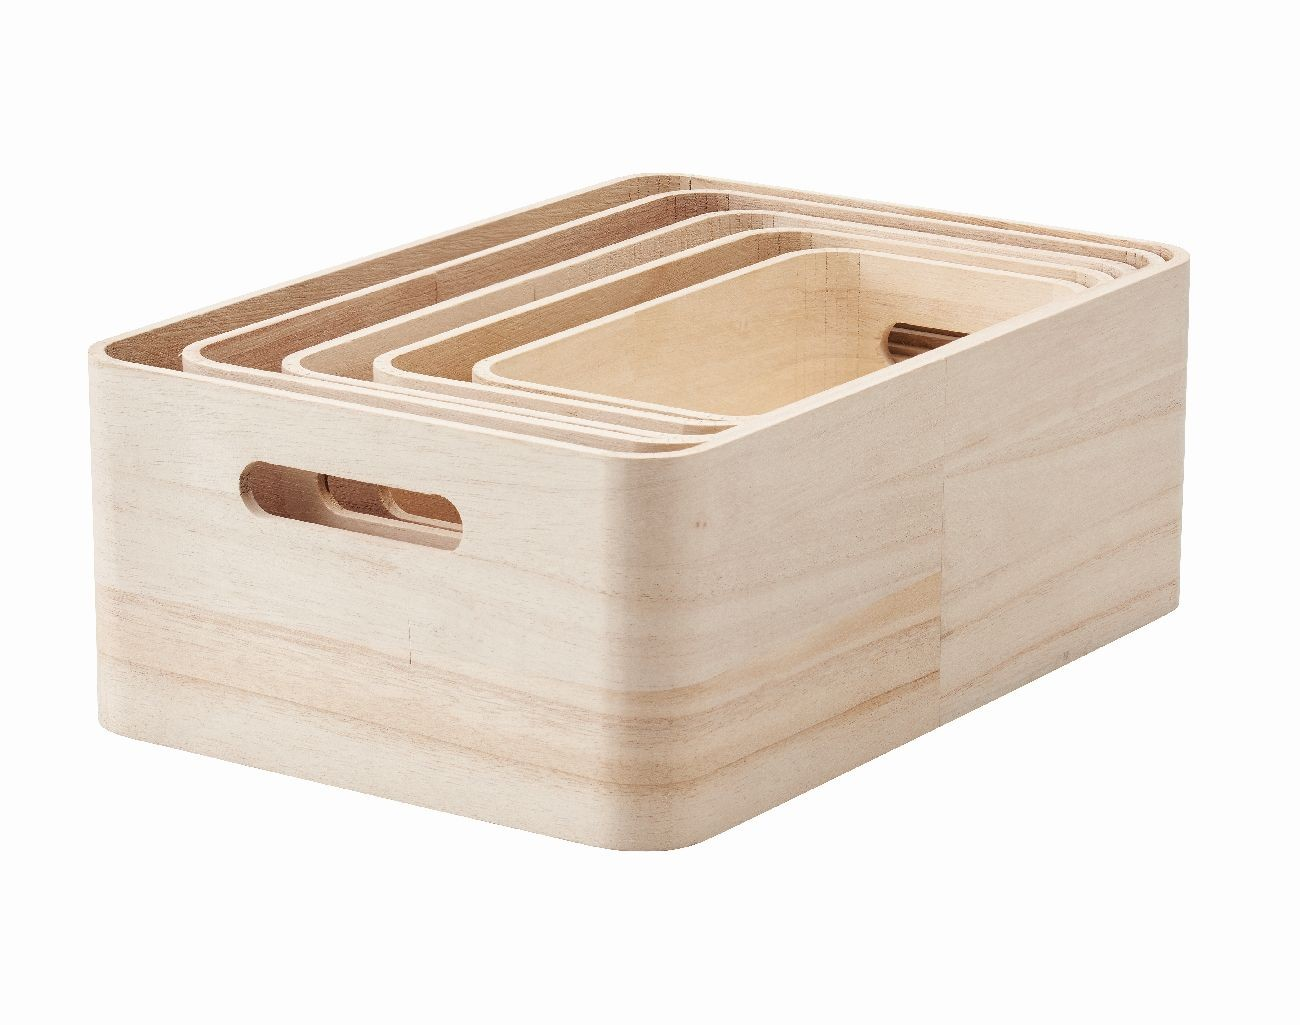 RIG-TIG by stelton SAVE-IT Aufbewahrungsboxen 5er Set stelton-Zpr4